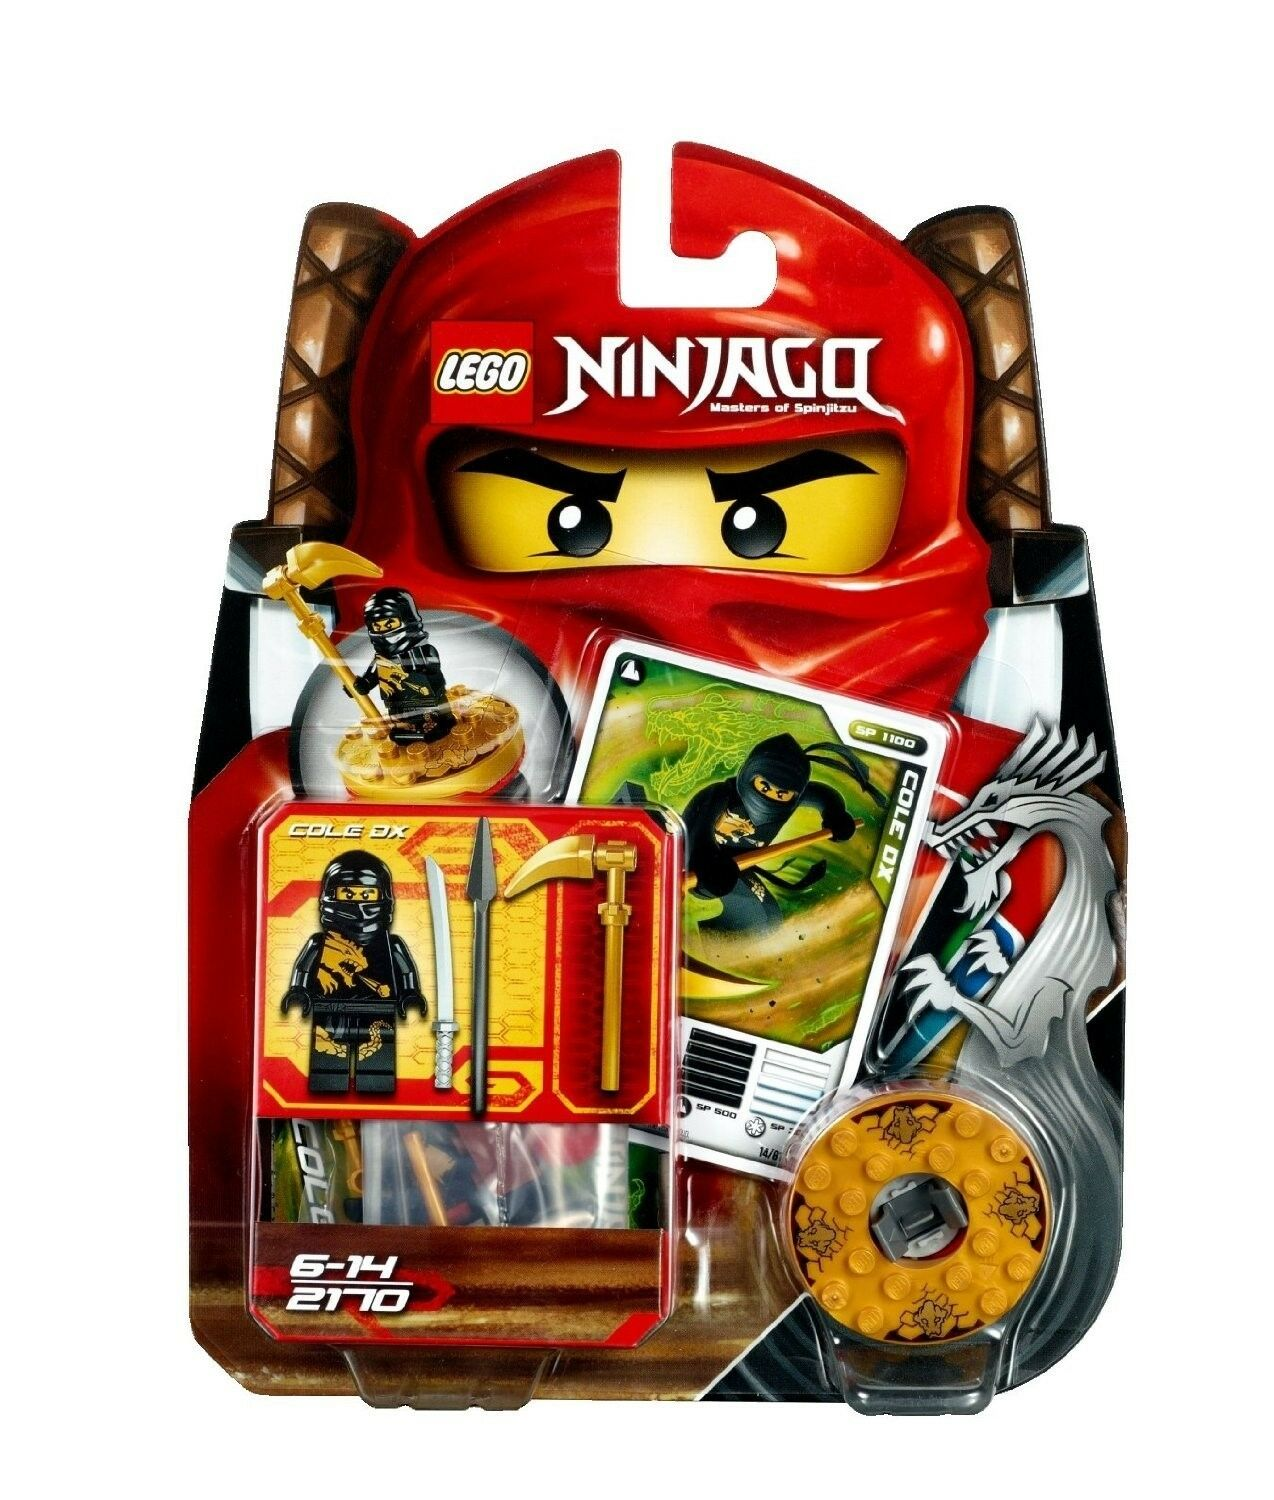 LEGO NINJAGO 2170 COLE DX BRAND NEW DATED 2011